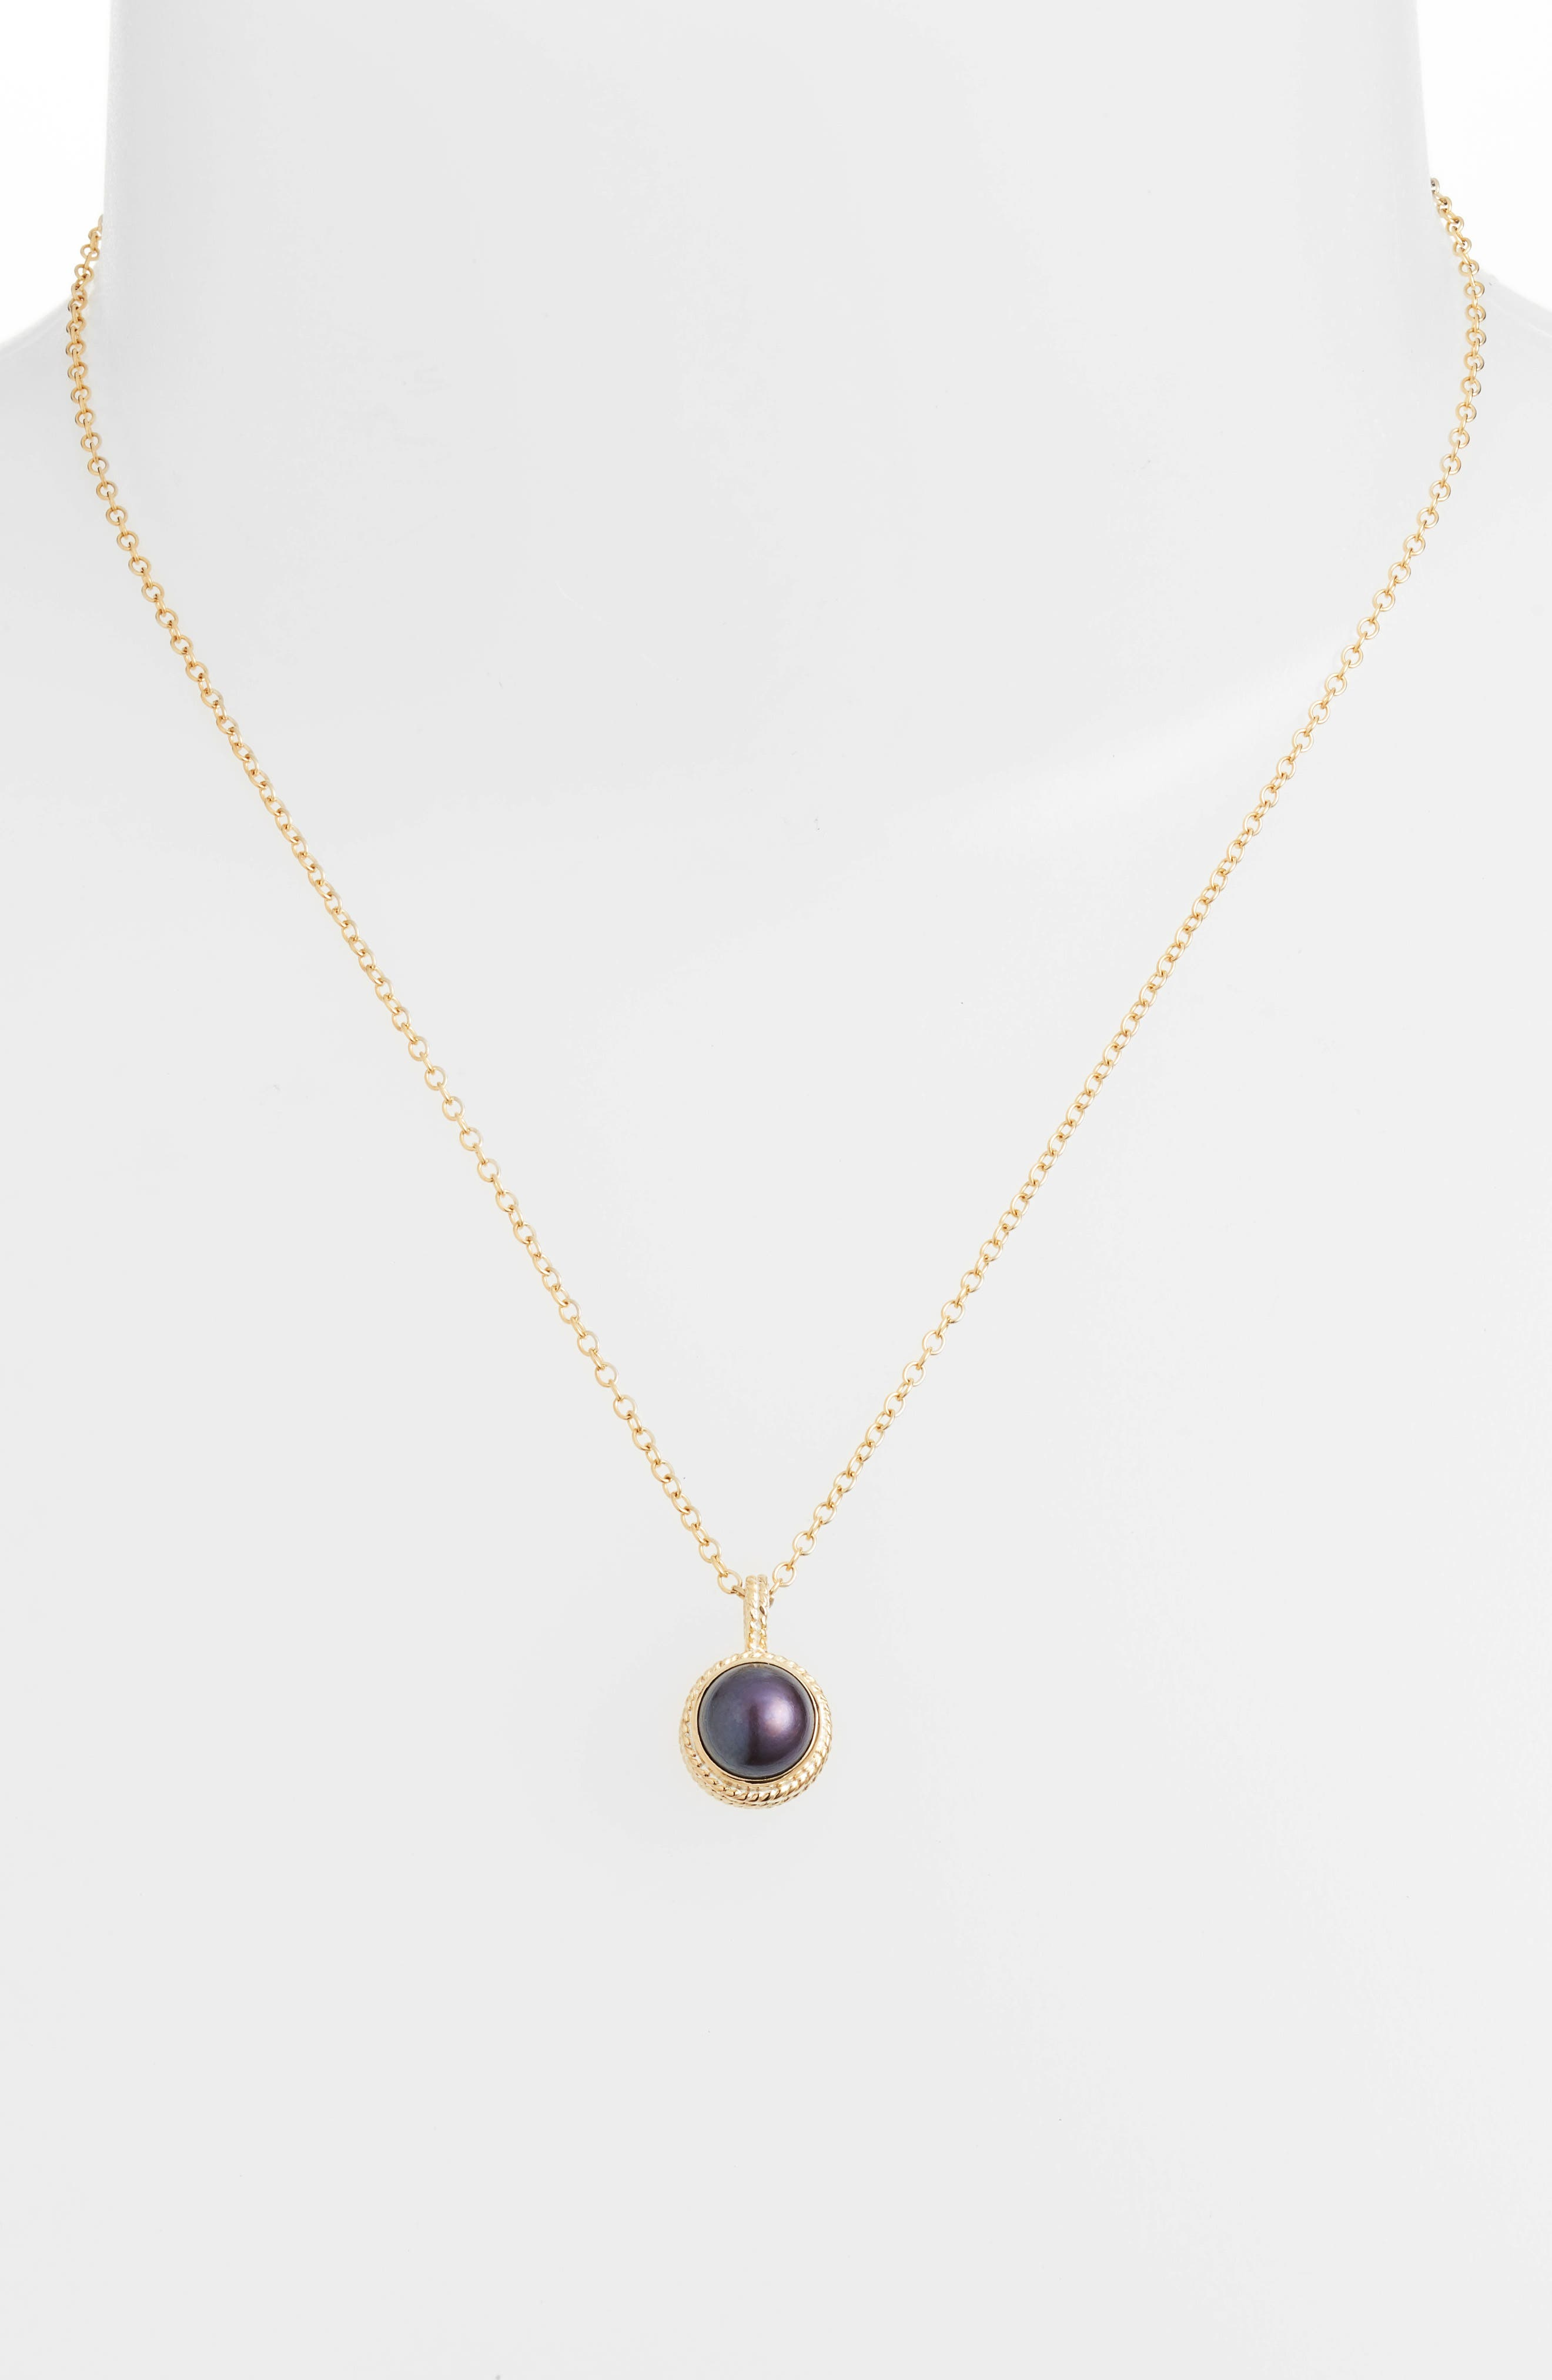 Genuine Blue Pearl Pendant Necklace,                             Alternate thumbnail 2, color,                             Gold/ Blue Pearl